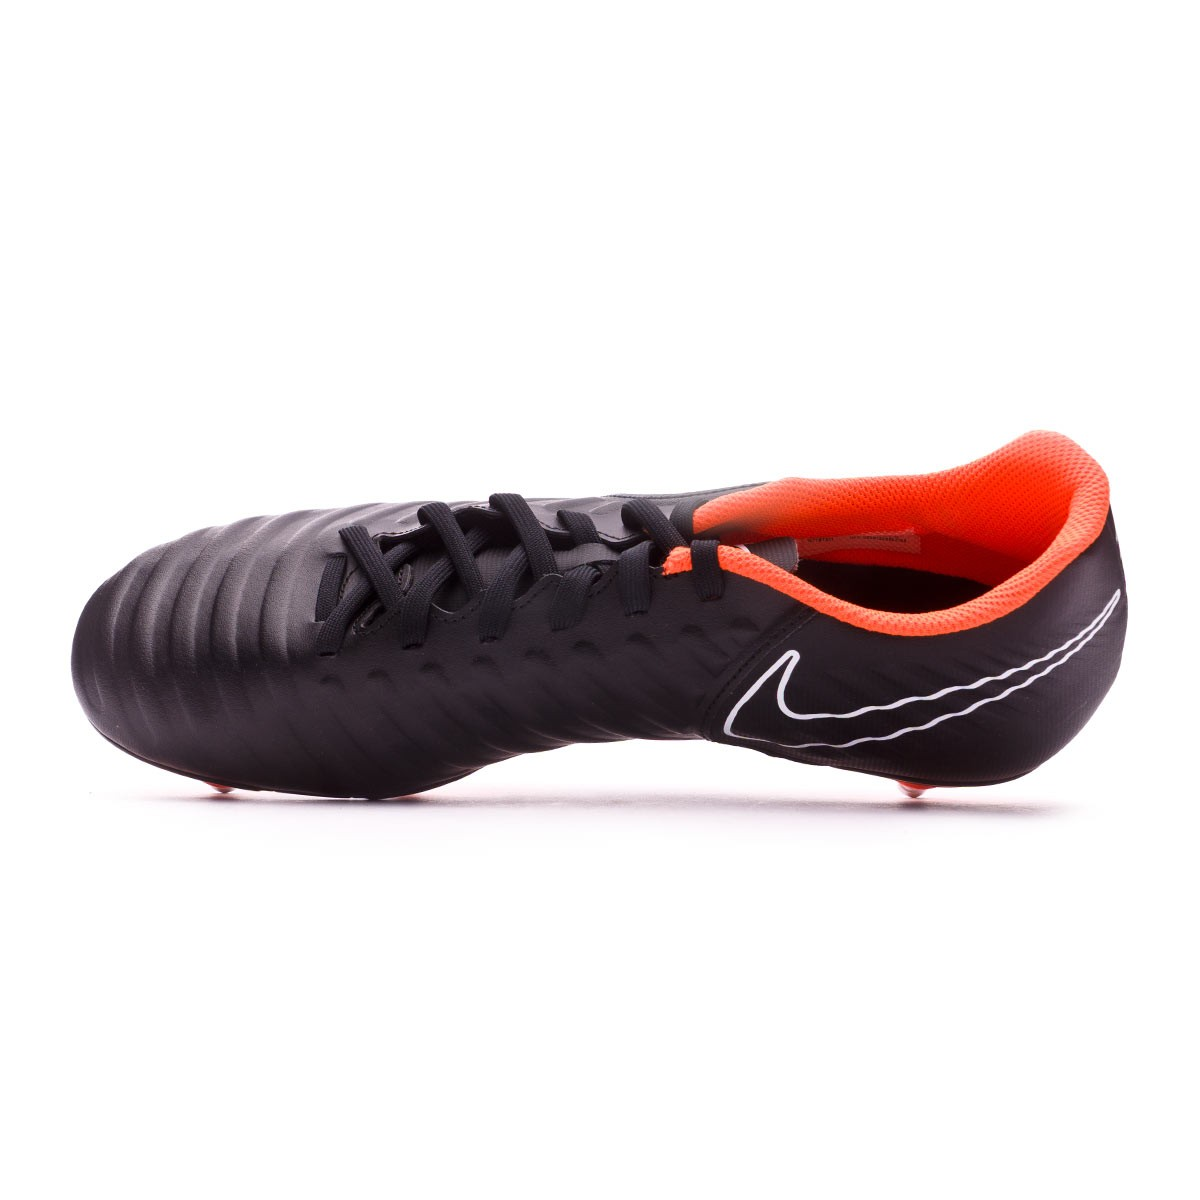 4e5bfaa33 Football Boots Nike Tiempo Legend VII Club SG Black-Total Orange-White -  Football store Fútbol Emotion